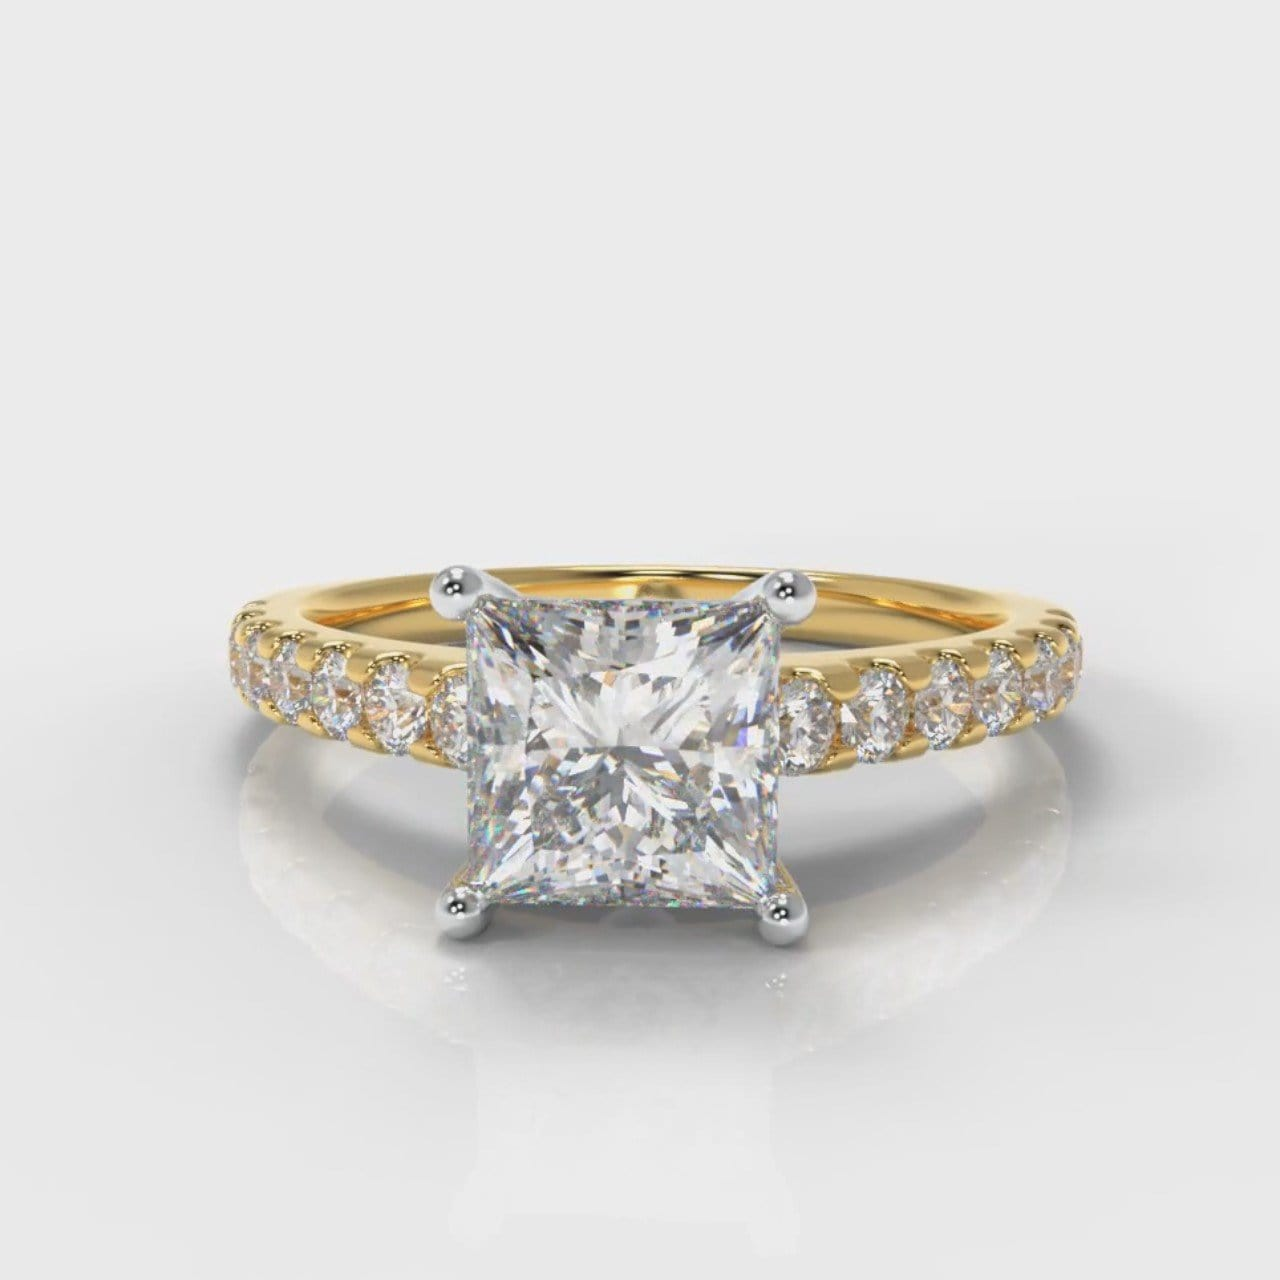 Carrée Micropavé Princess Cut Diamond Engagement Ring - Yellow Gold